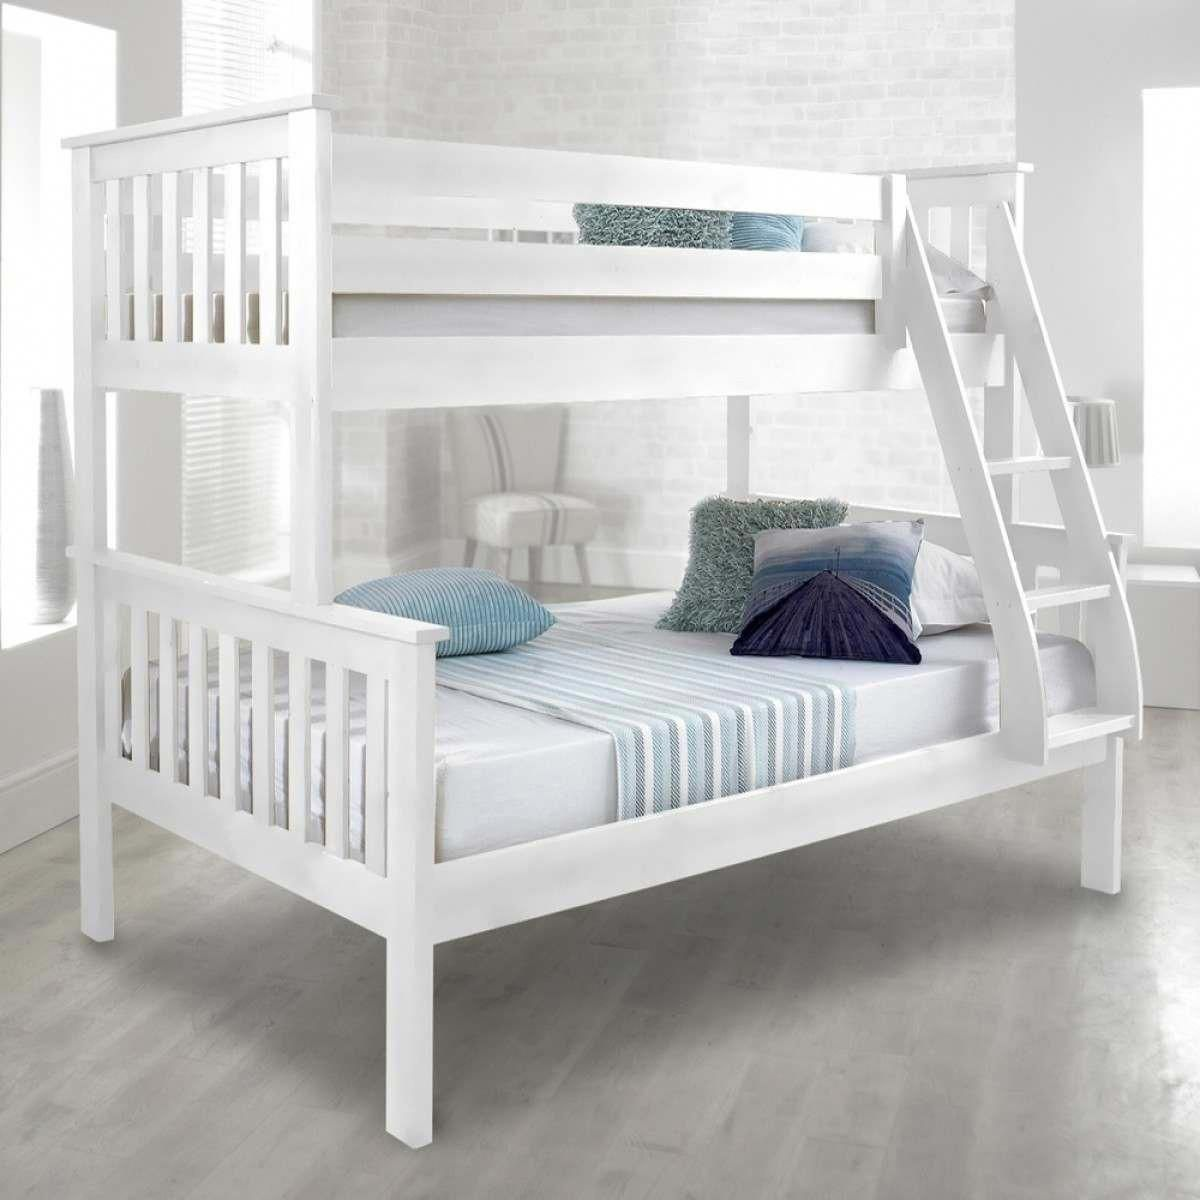 Loft bed with slide building plans  Atlantis White Finish Solid Pine Wooden Triple Sleeper Bunk Bed